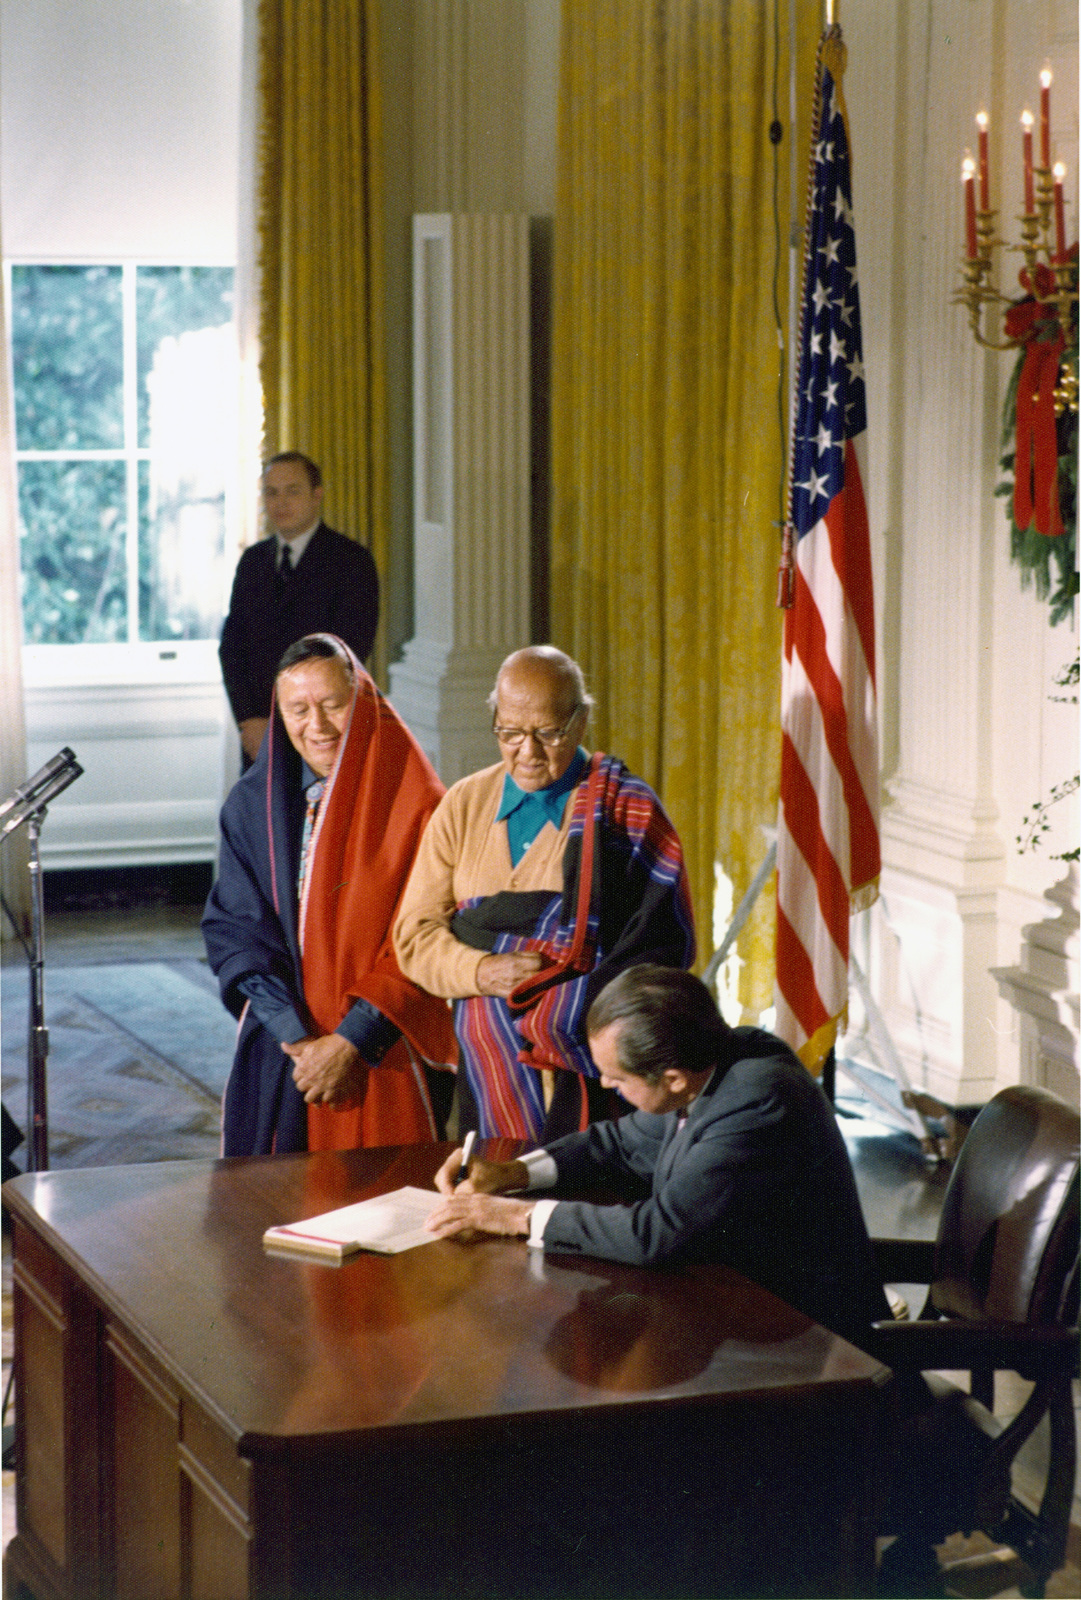 President Richard Nixon Speaking to Attendees at Signing Ceremony for the Blue Lake Bill, HR 471, which Deeded Lands to Taos and Pueblo Indians